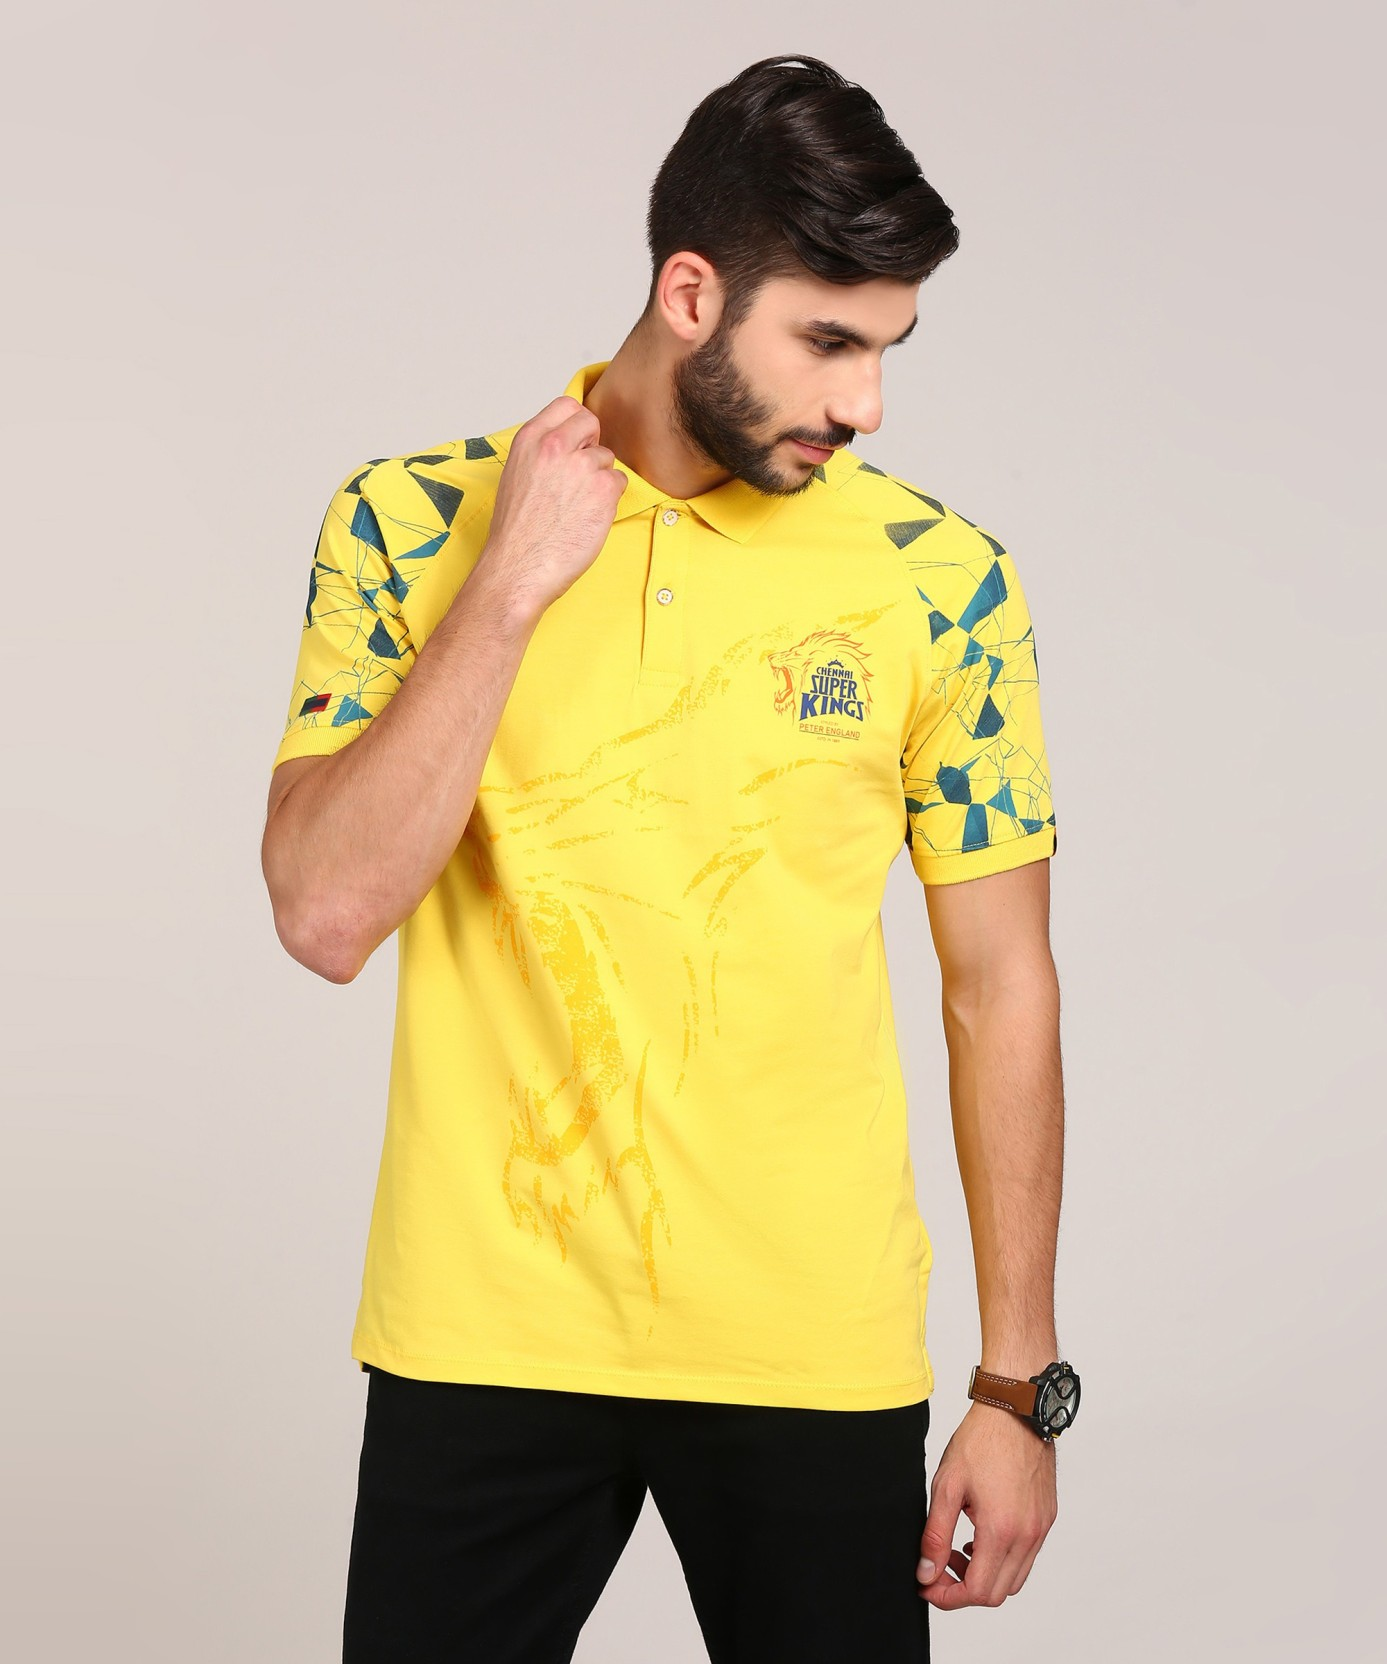 082e5cce Peter England Printed Men's Polo Neck Yellow T-Shirt. ADD TO CART. BUY NOW